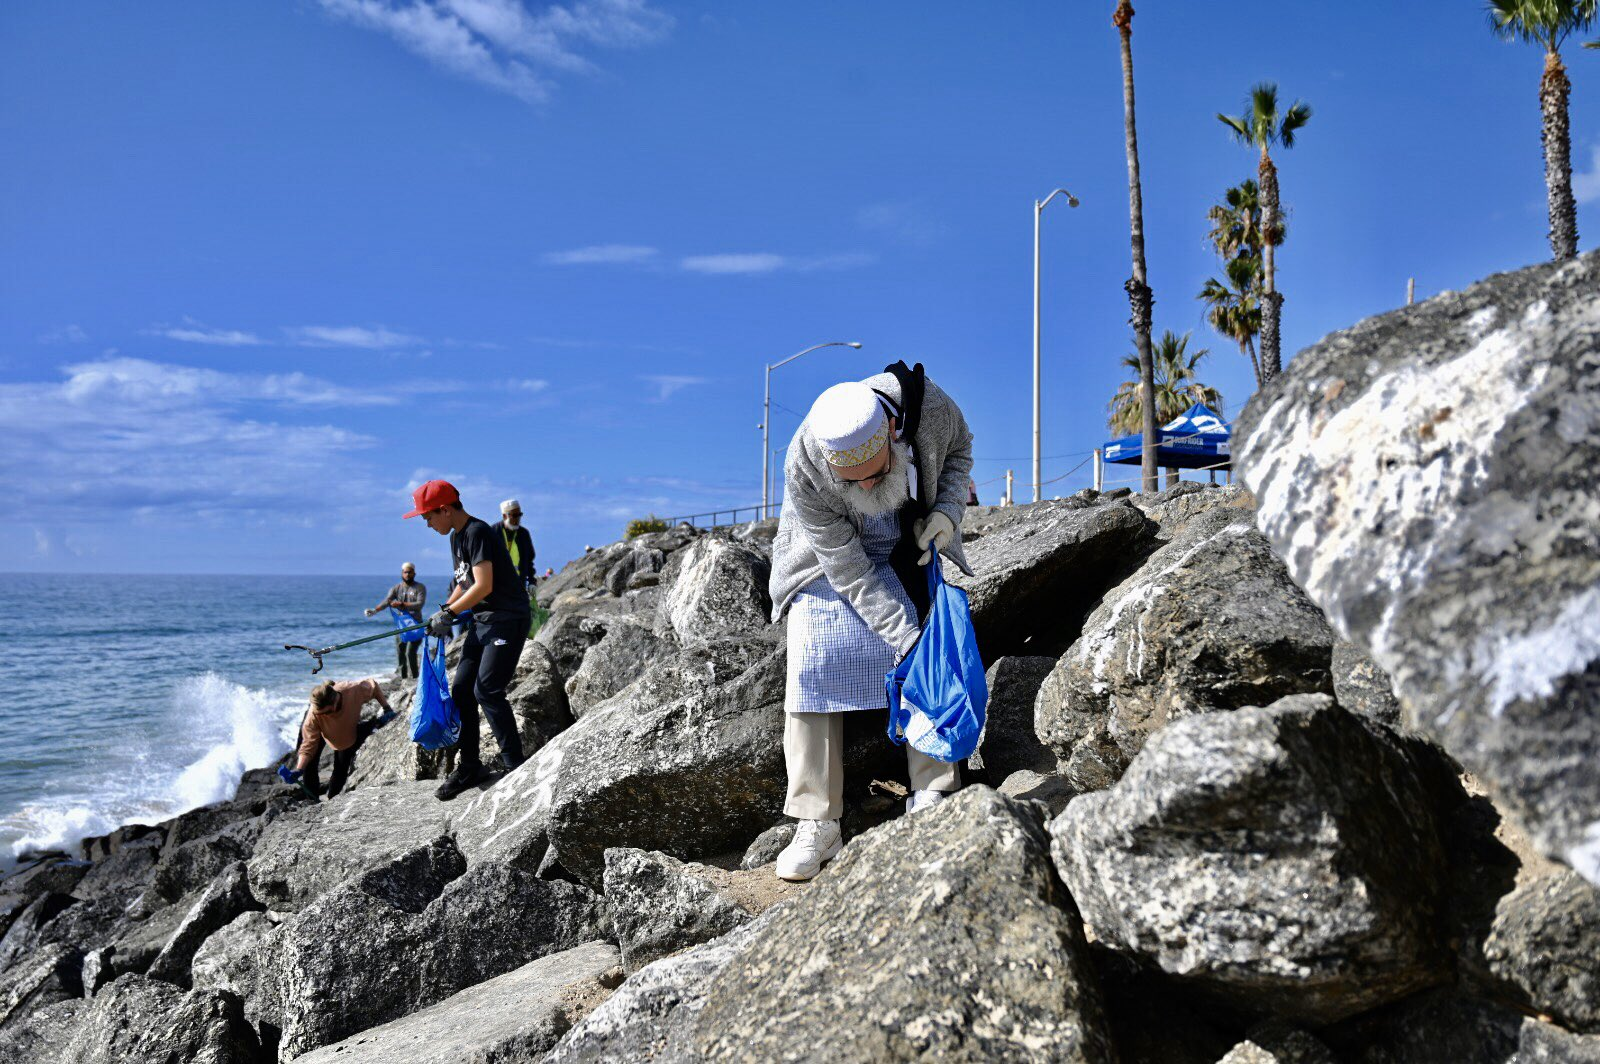 Dawoodi Bohras, Los Angeles, LA, Sunset Point Beach, Surfrider, Turning the Tide, Project Rise, Beach, Cleanup, Plastic Pollution, Afroz Shah